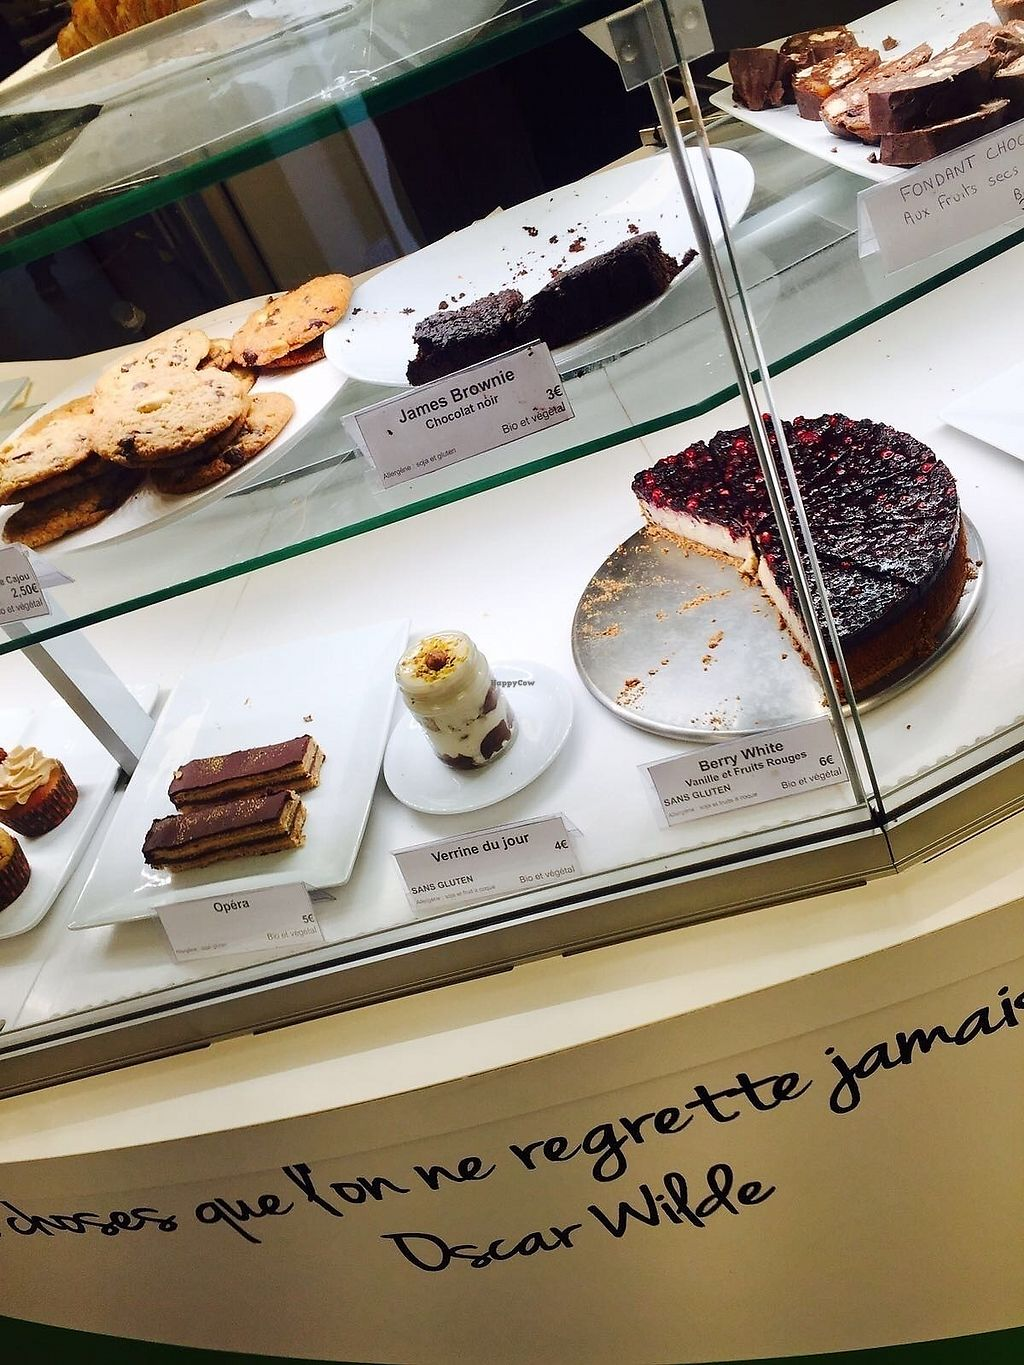 """Photo of Vegan Folie's  by <a href=""""/members/profile/TARAMCDONALD"""">TARAMCDONALD</a> <br/>Delicious cake selection <br/> September 11, 2017  - <a href='/contact/abuse/image/29521/303198'>Report</a>"""